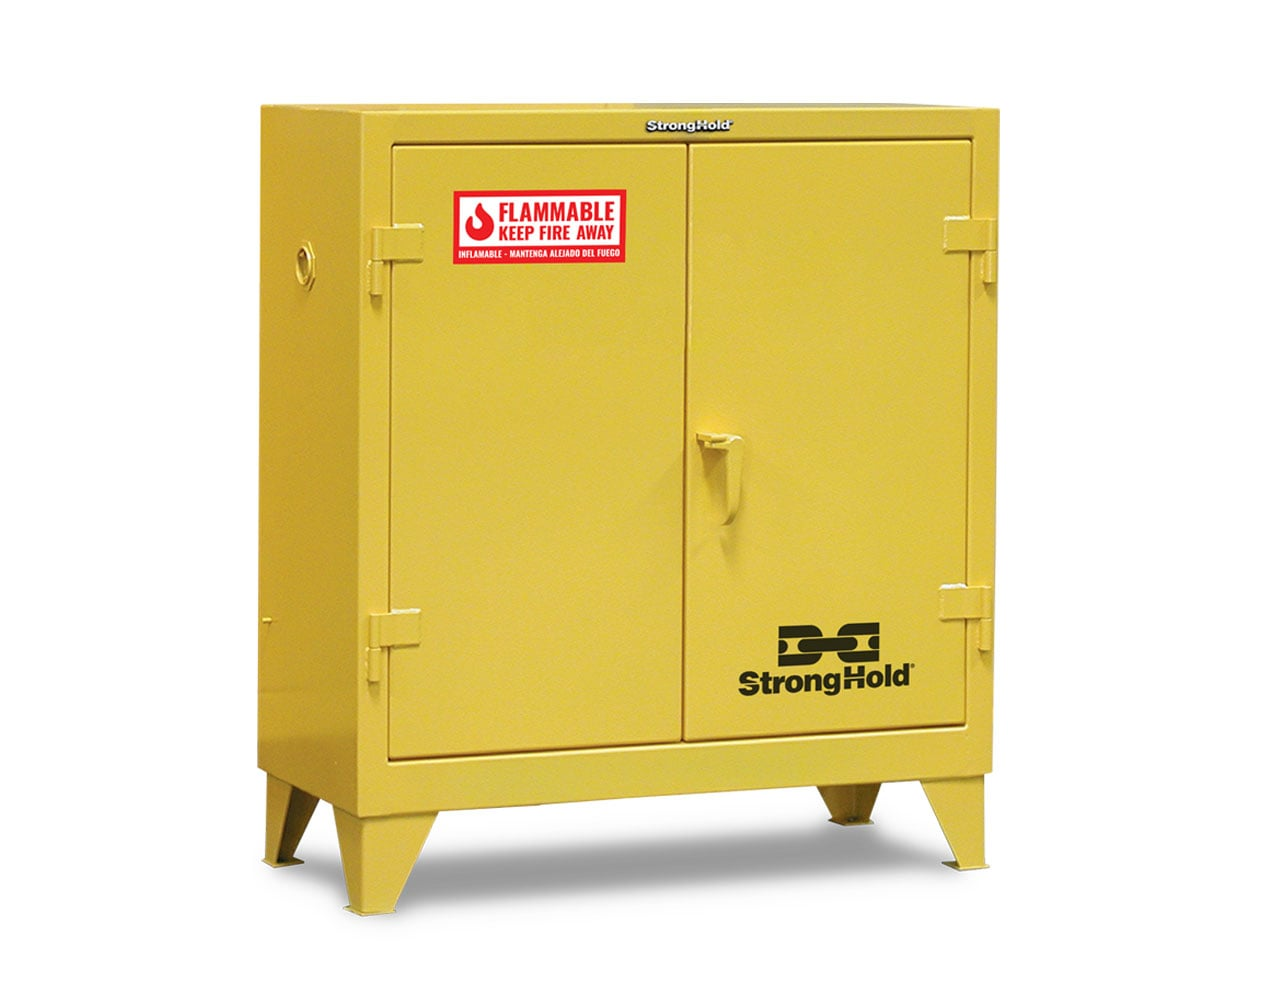 Extra Heavy Duty 12 GA 30 Gallon Flammable Safety Cabinet with Manual-Closing Doors, 2 Shelves – 44 In. W x 18 In. D x 49 In. H